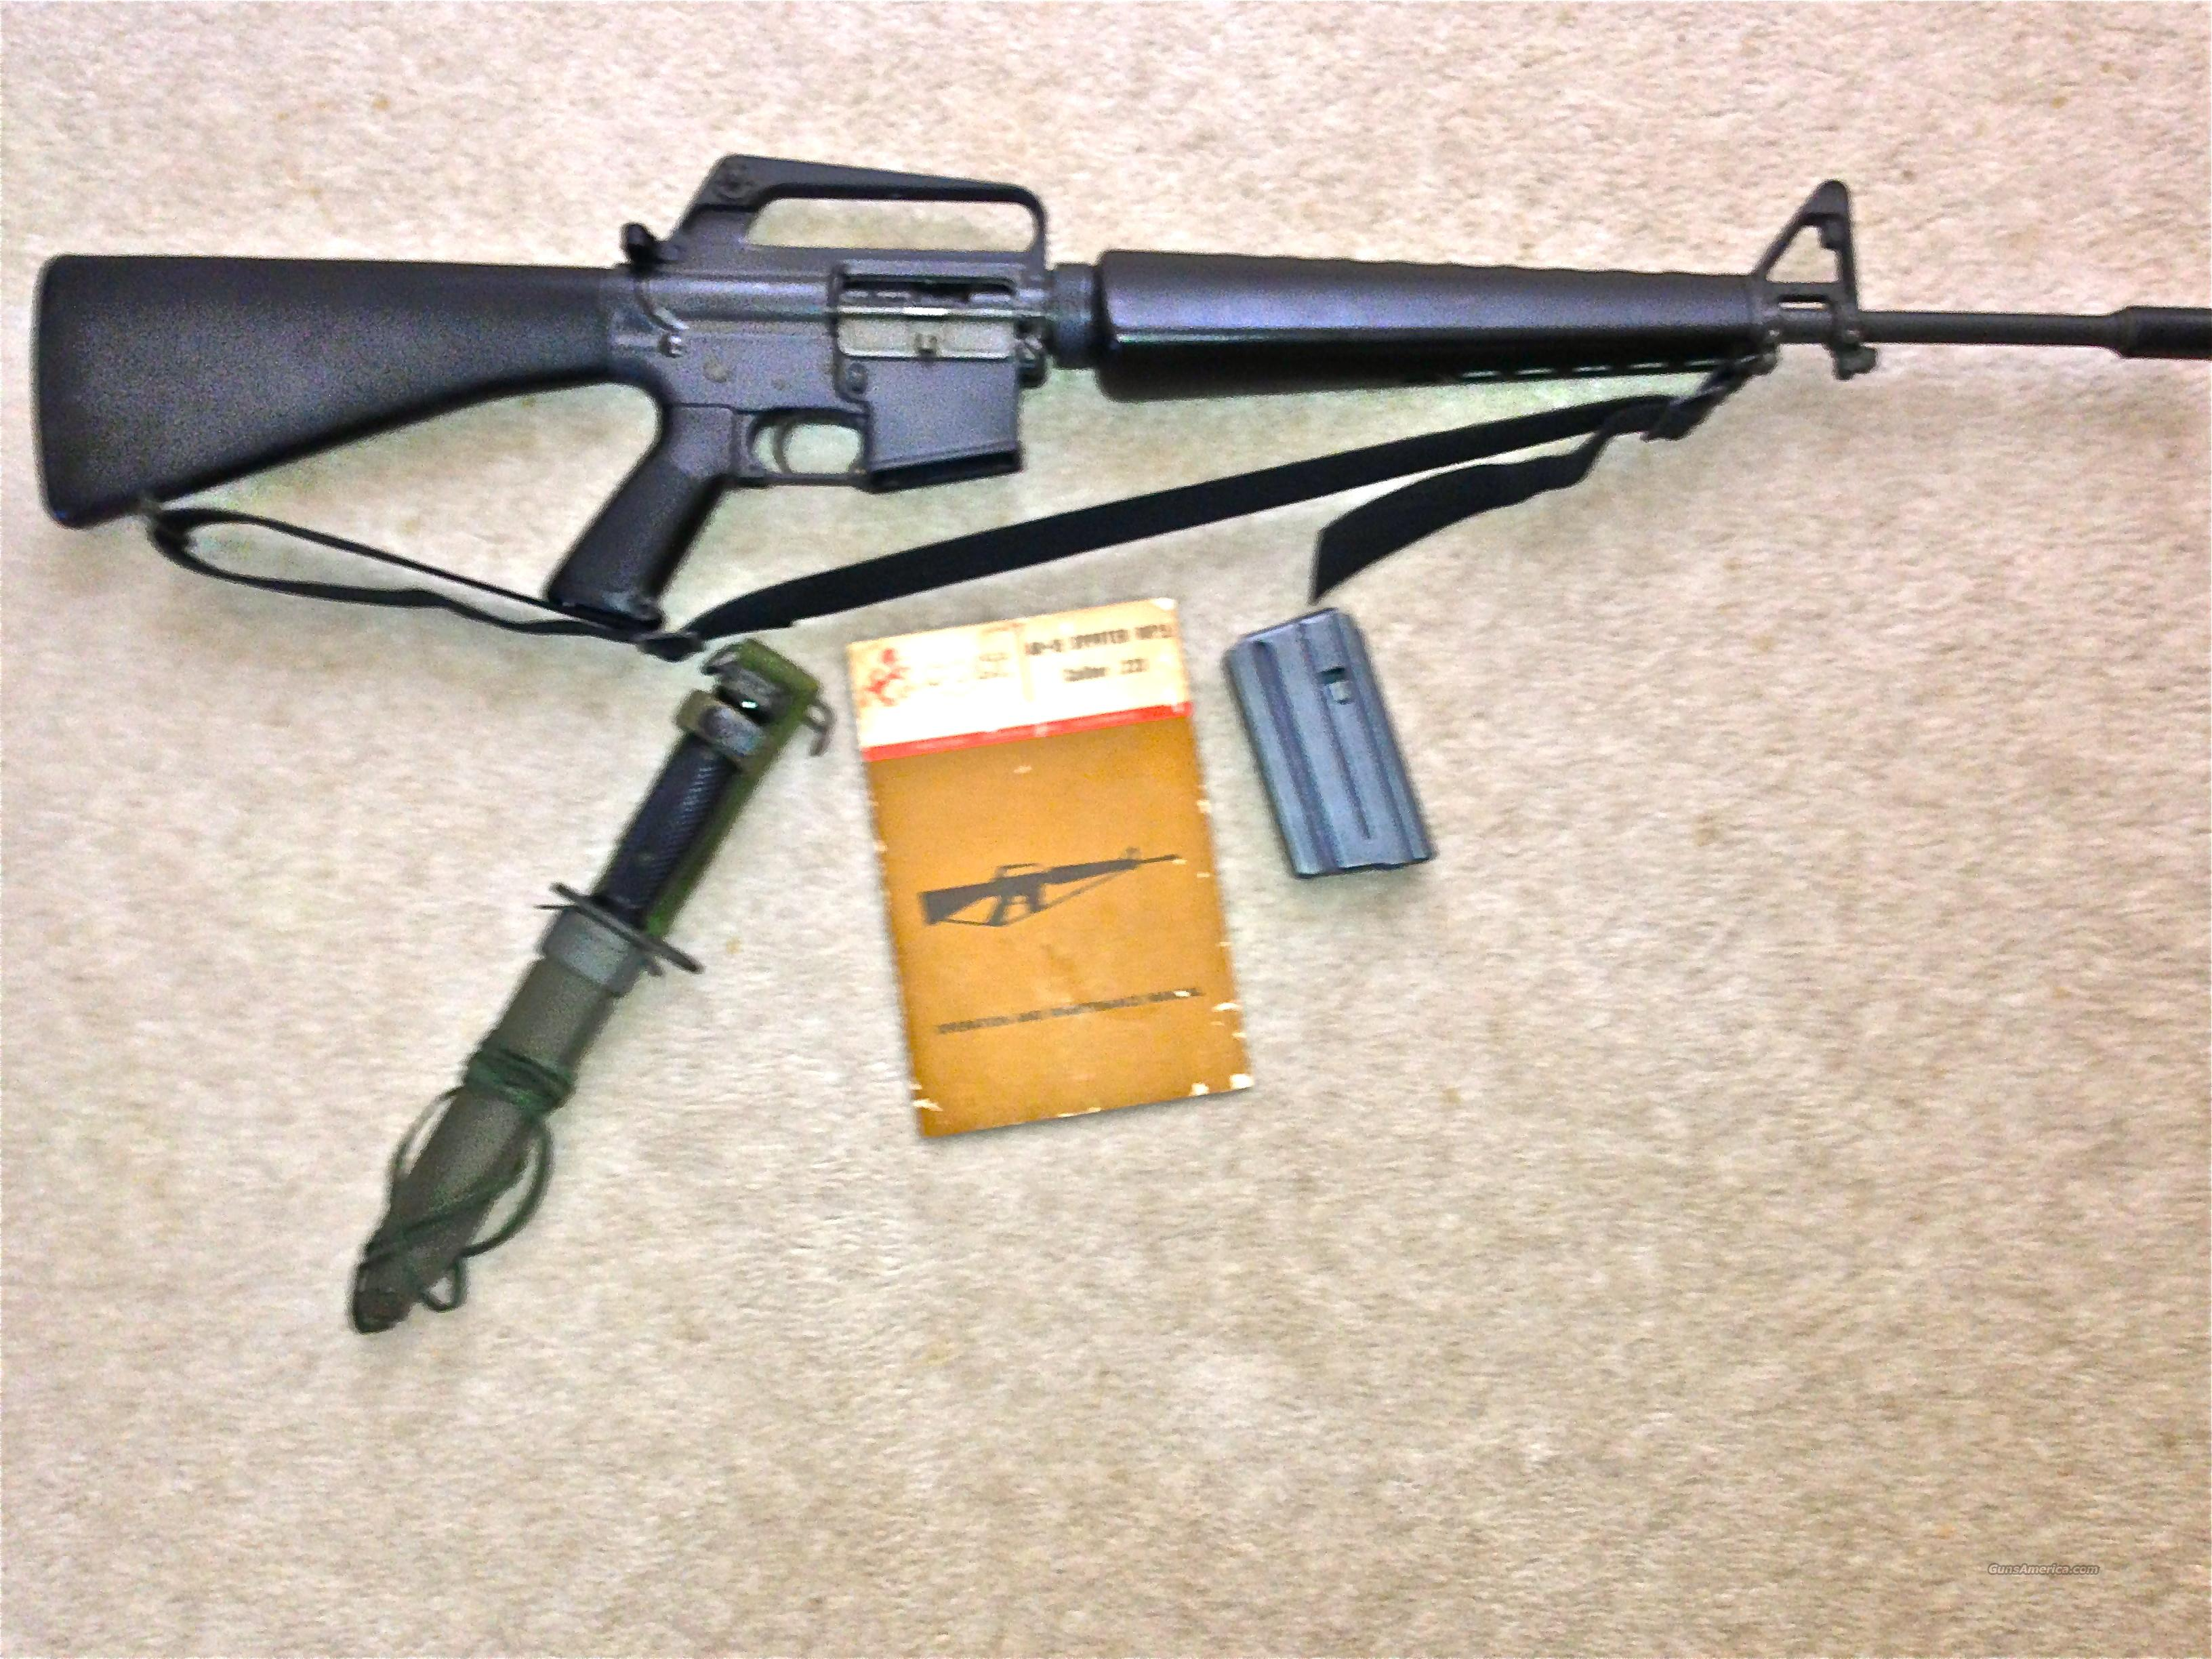 COLT SP-1 AR15 WITH MANUAL AND m7 BAYONET   Guns > Rifles > Colt Military/Tactical Rifles